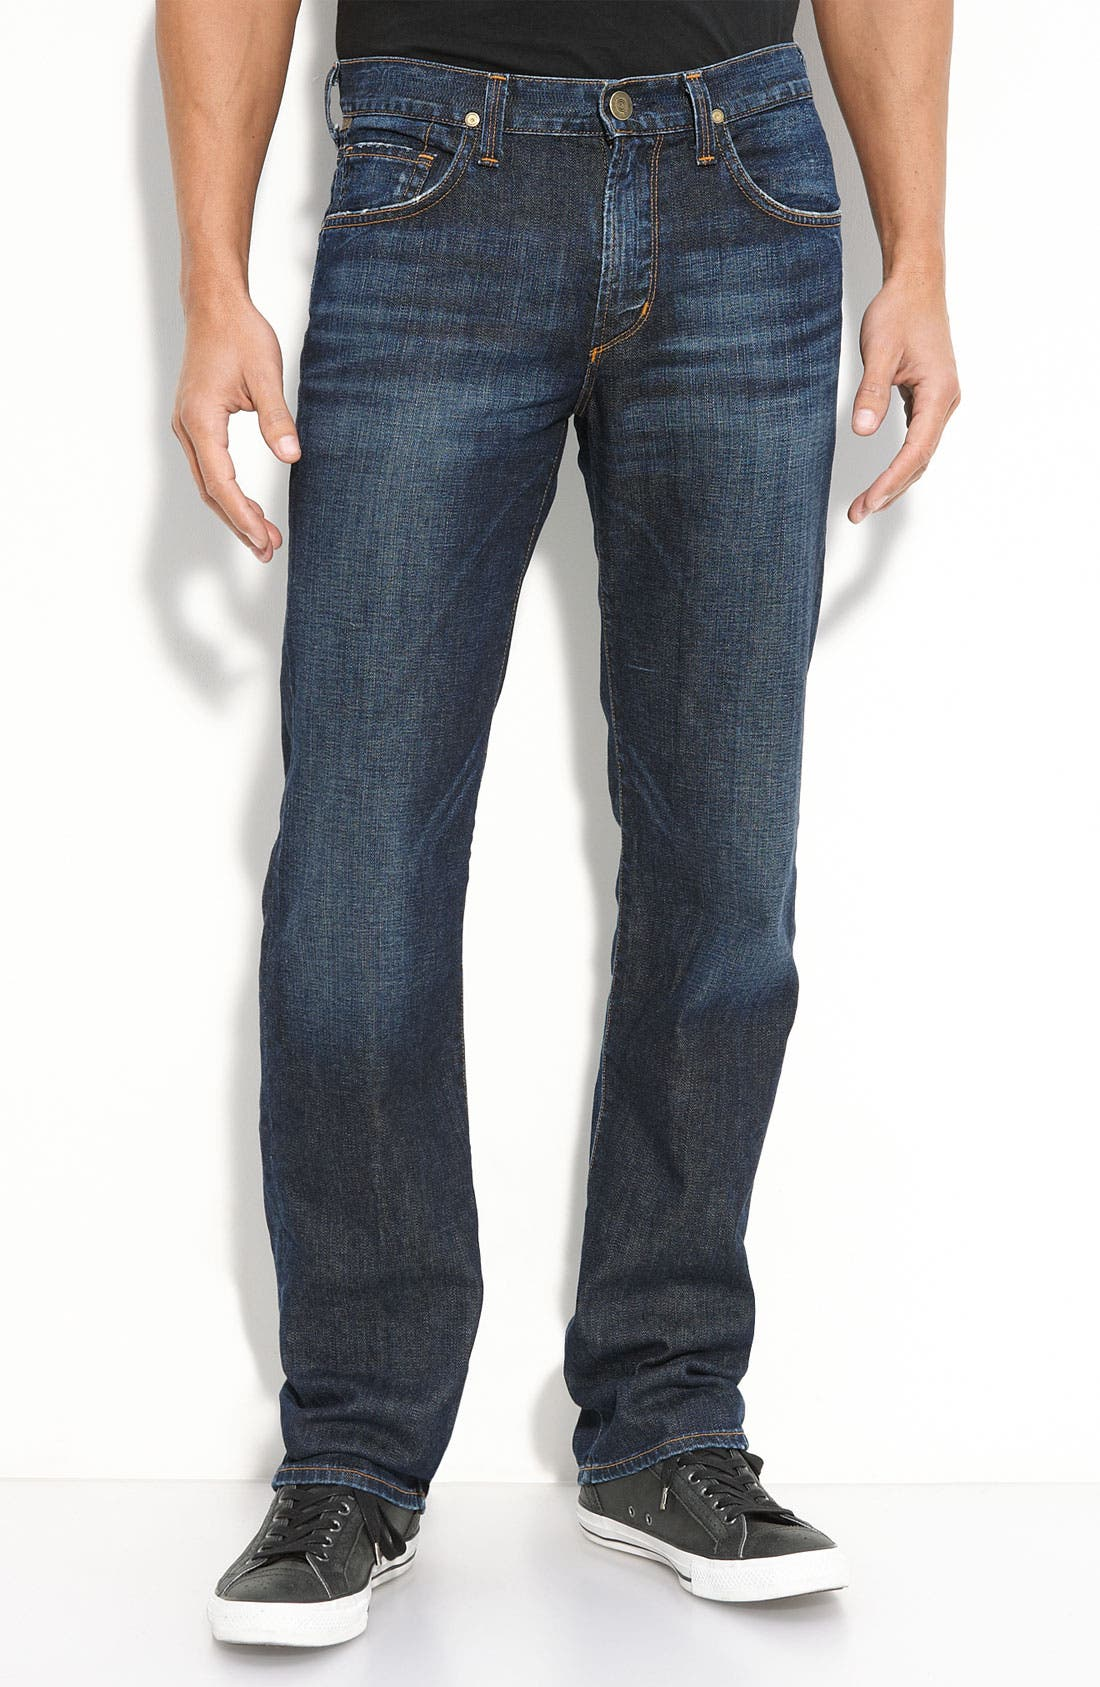 Alternate Image 1 Selected - Citizens of Humanity 'Sid' Straight Leg Jeans (Incur)